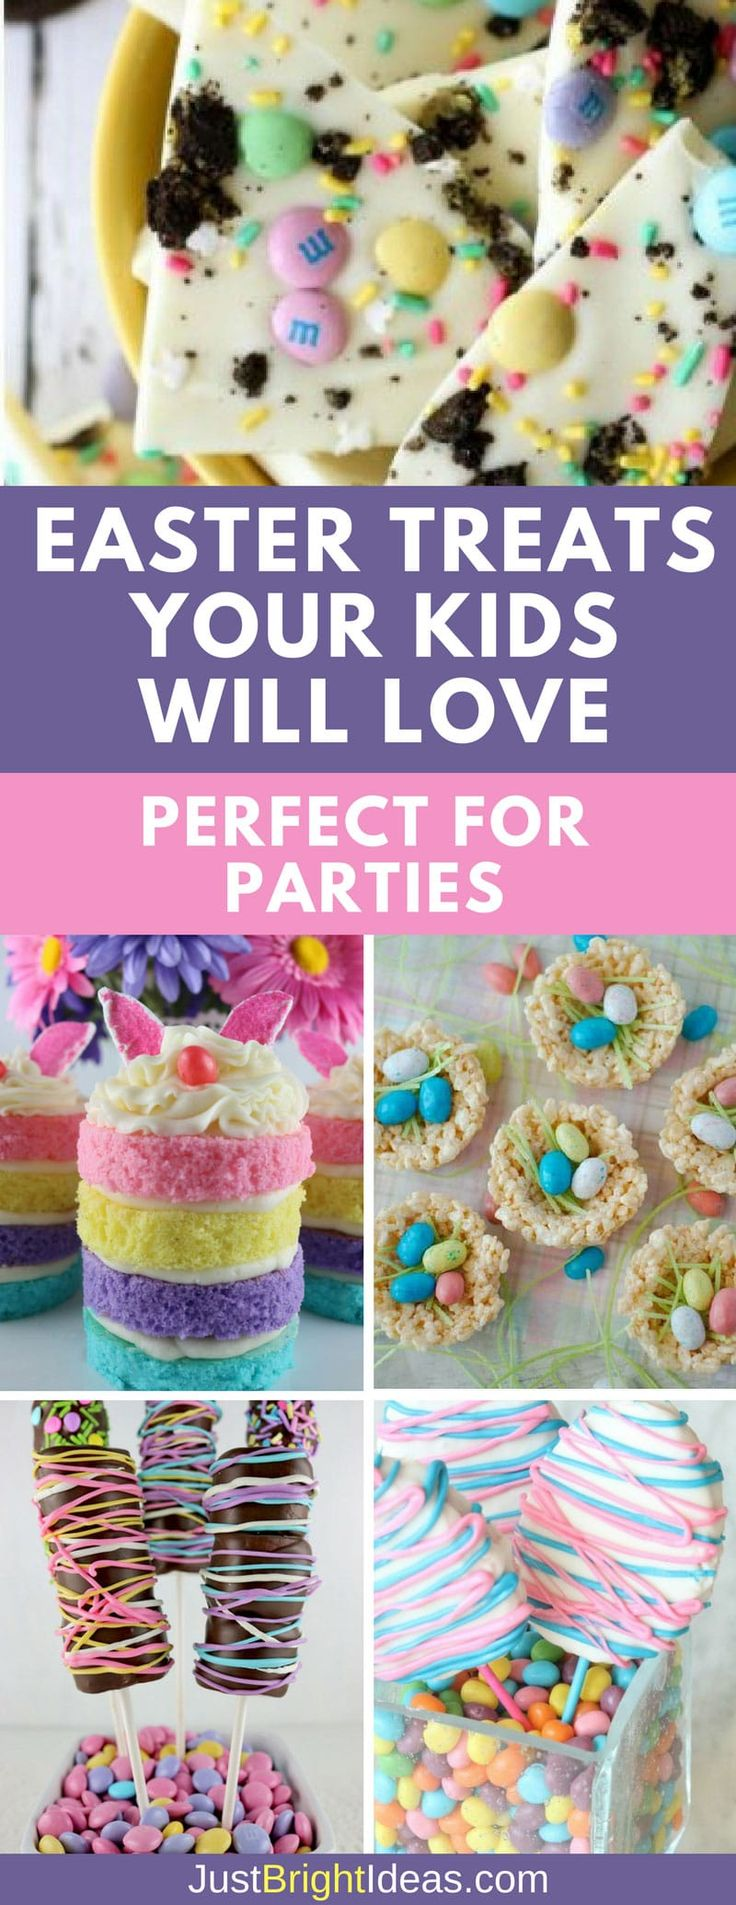 Easter Treats for Toddlers